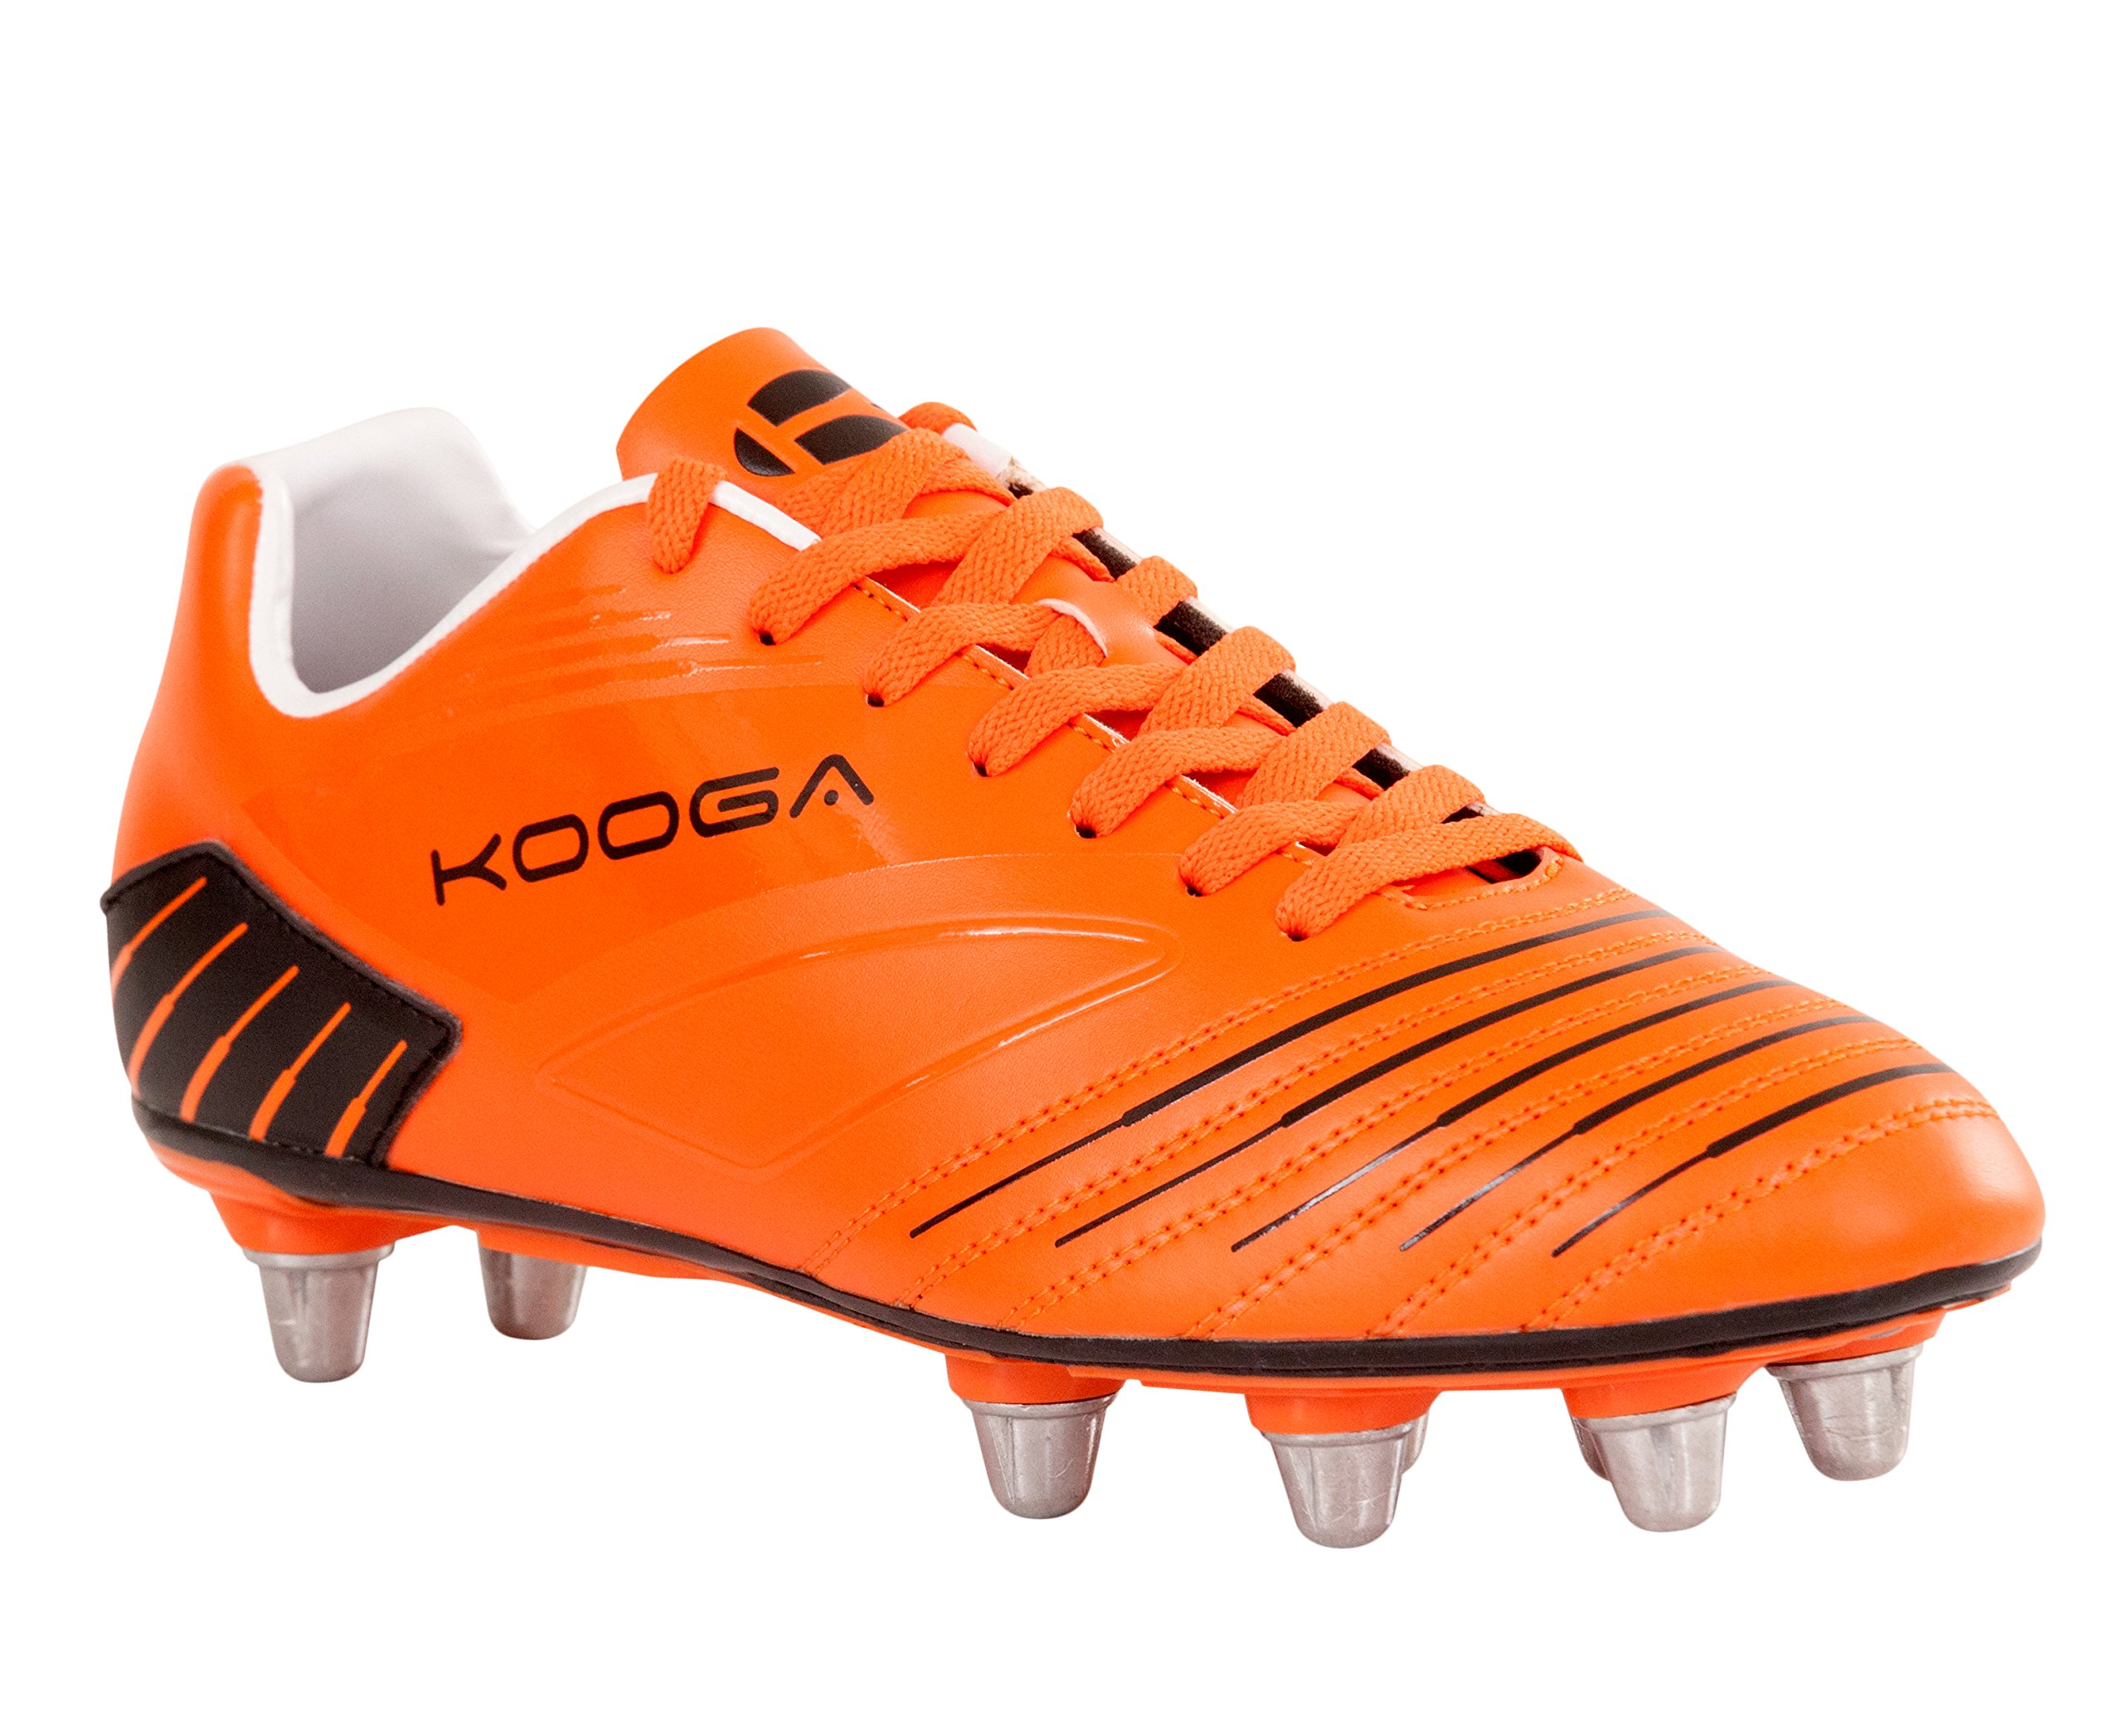 Kooga Advantage Sg Adult Boot 15/16